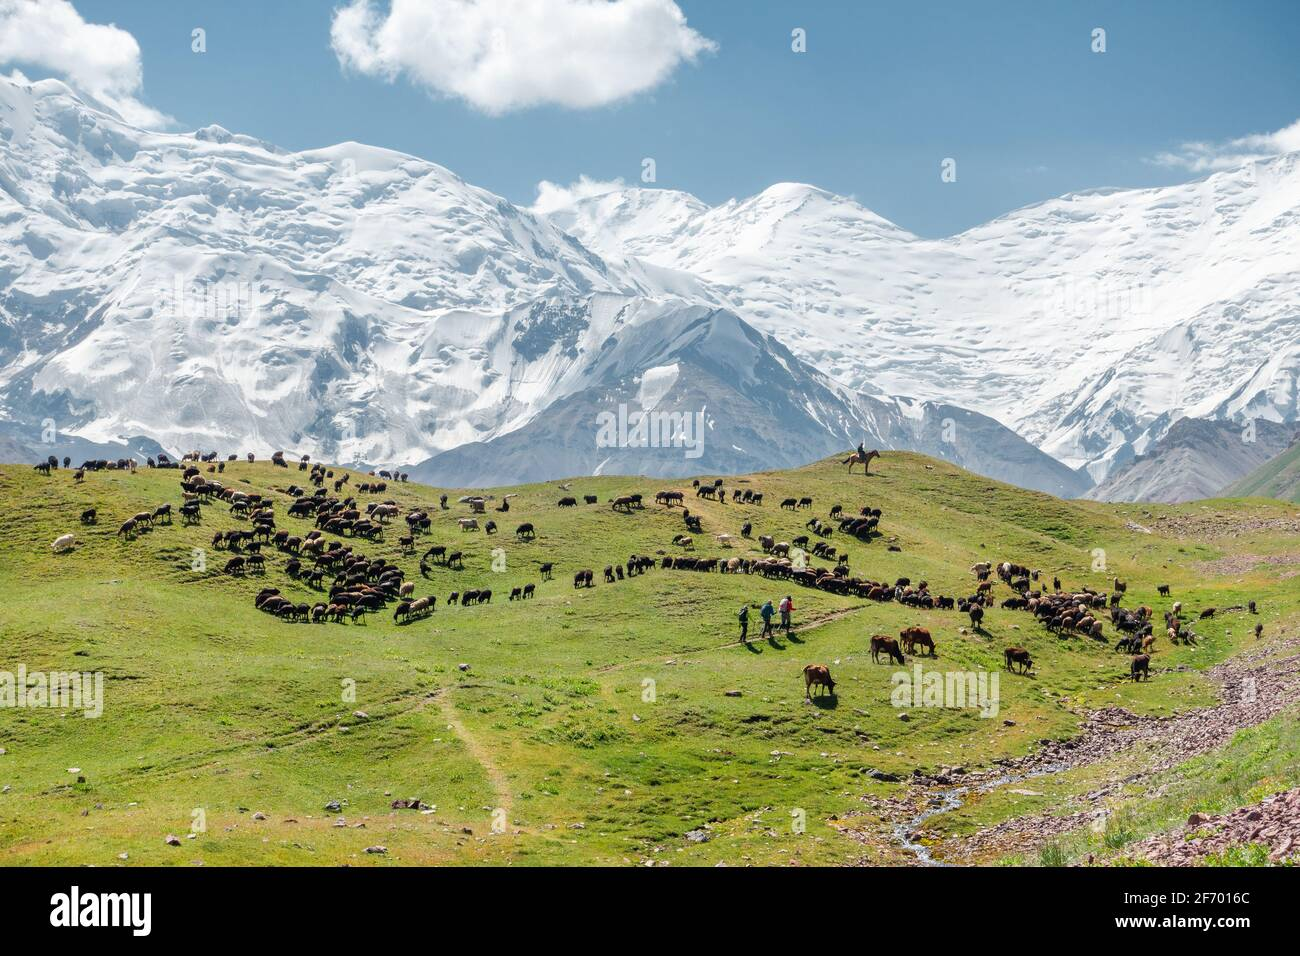 Horses and cows grazing in a pasture near Lenin Peak's base camp, Pamir snowcapped mountain ridge on the border of Kyrgyzstan and Tajikistan Stock Photo